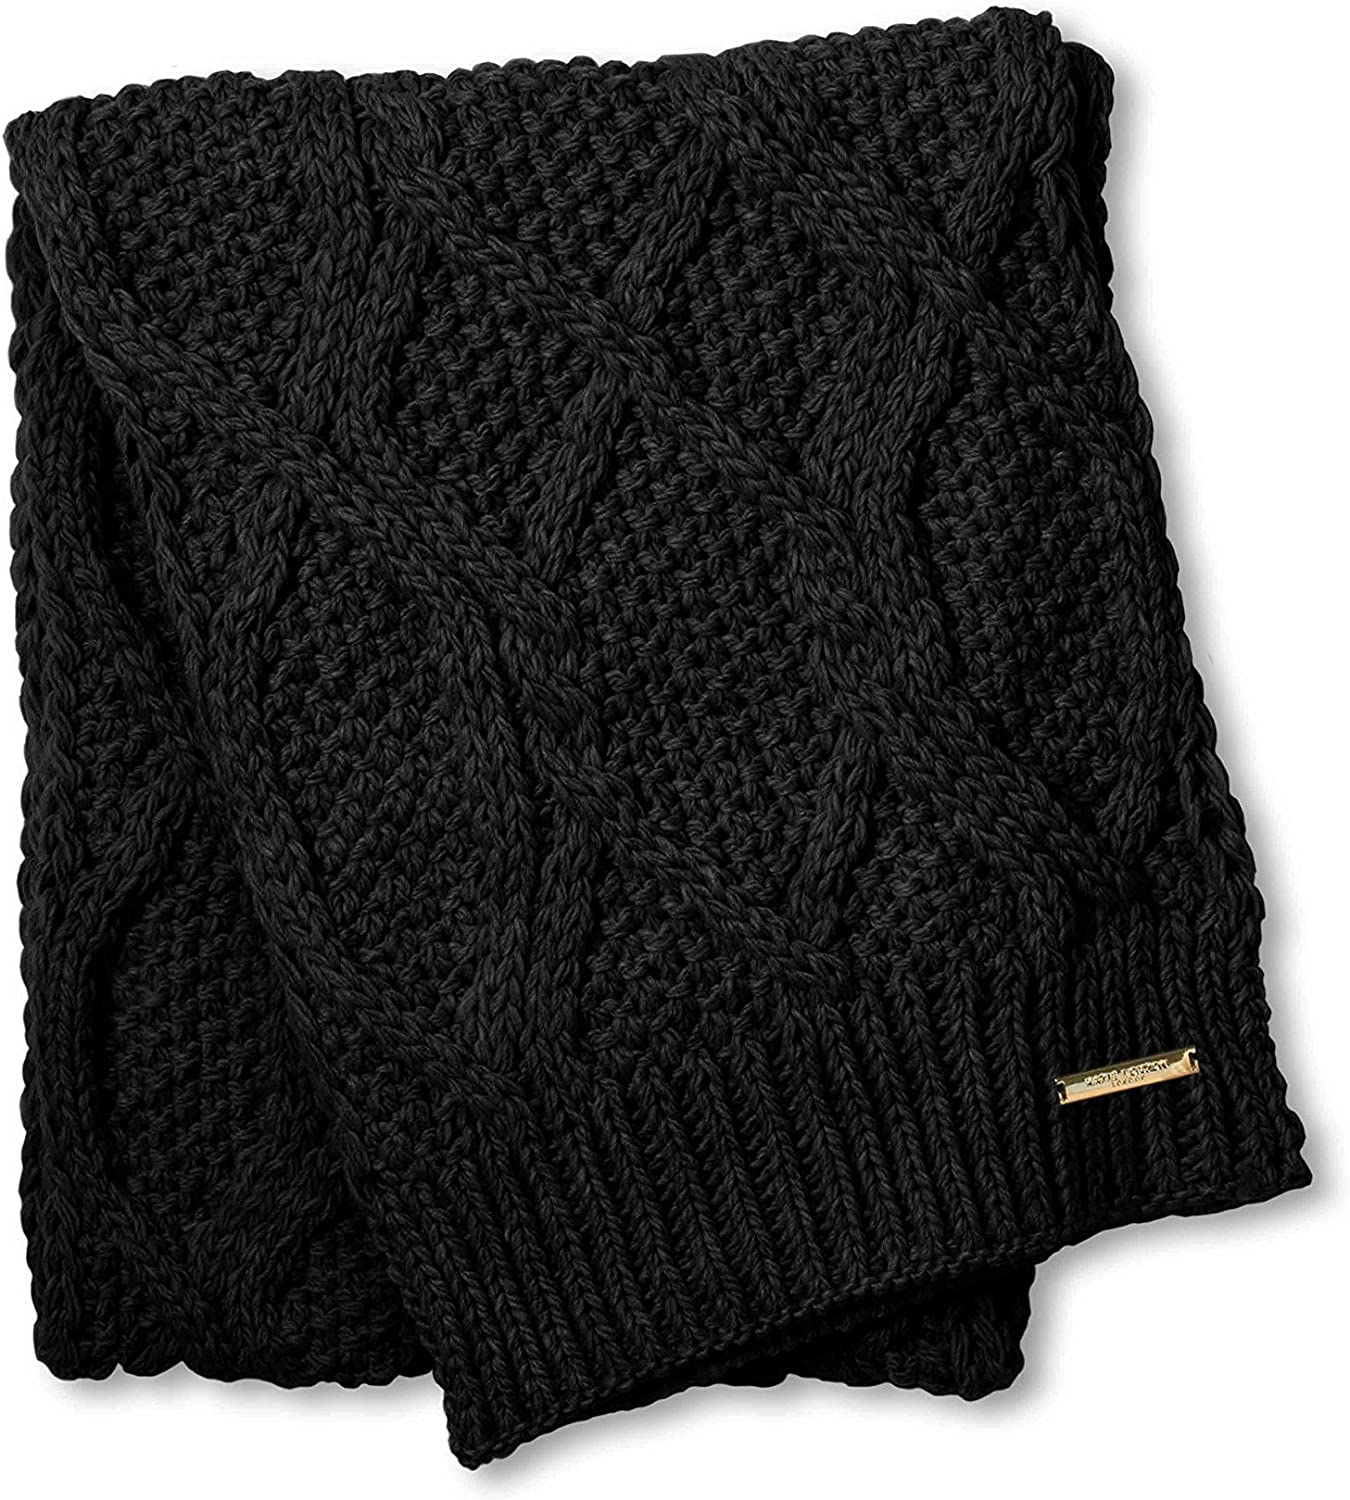 Katie Loxton Ladies black cable knit bobble hat FREE giftwrap and giftbag